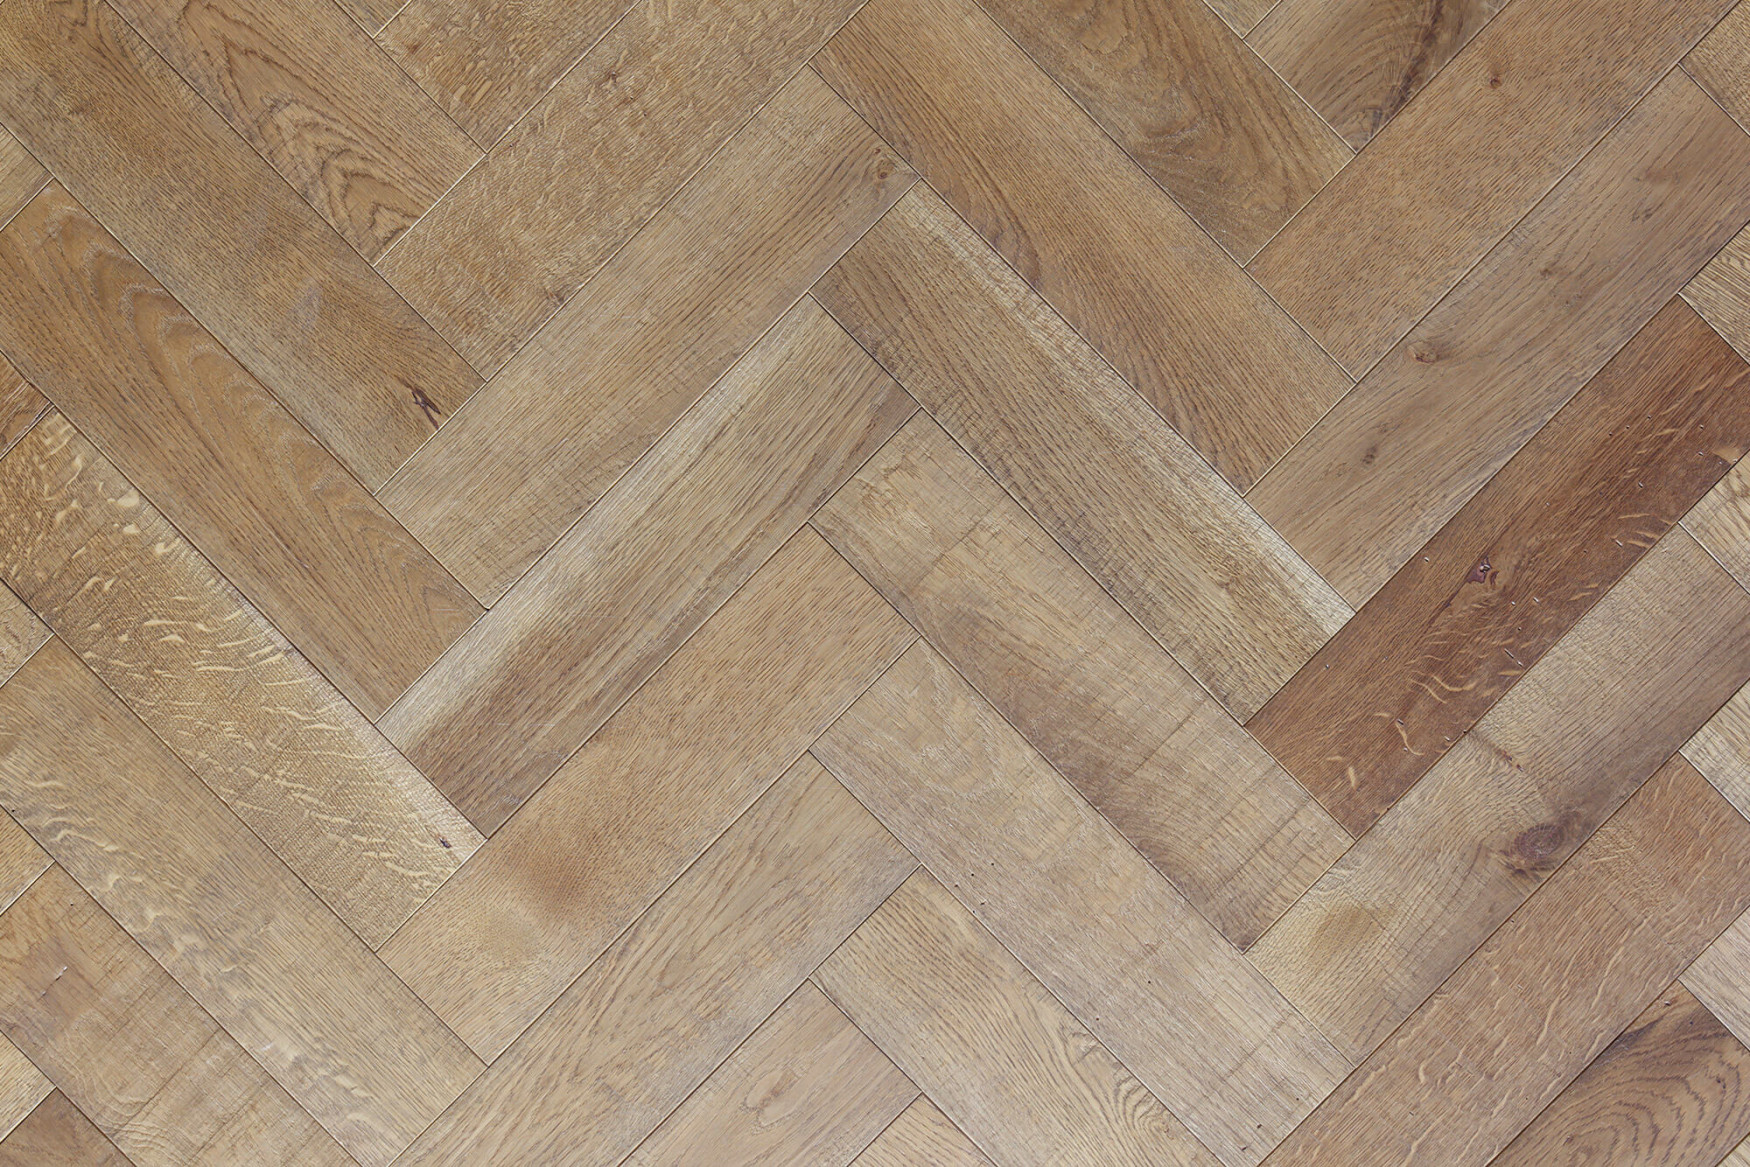 Element7-parquet--AJ_562_437-copy_3_AntiqueGreyDistressedOak